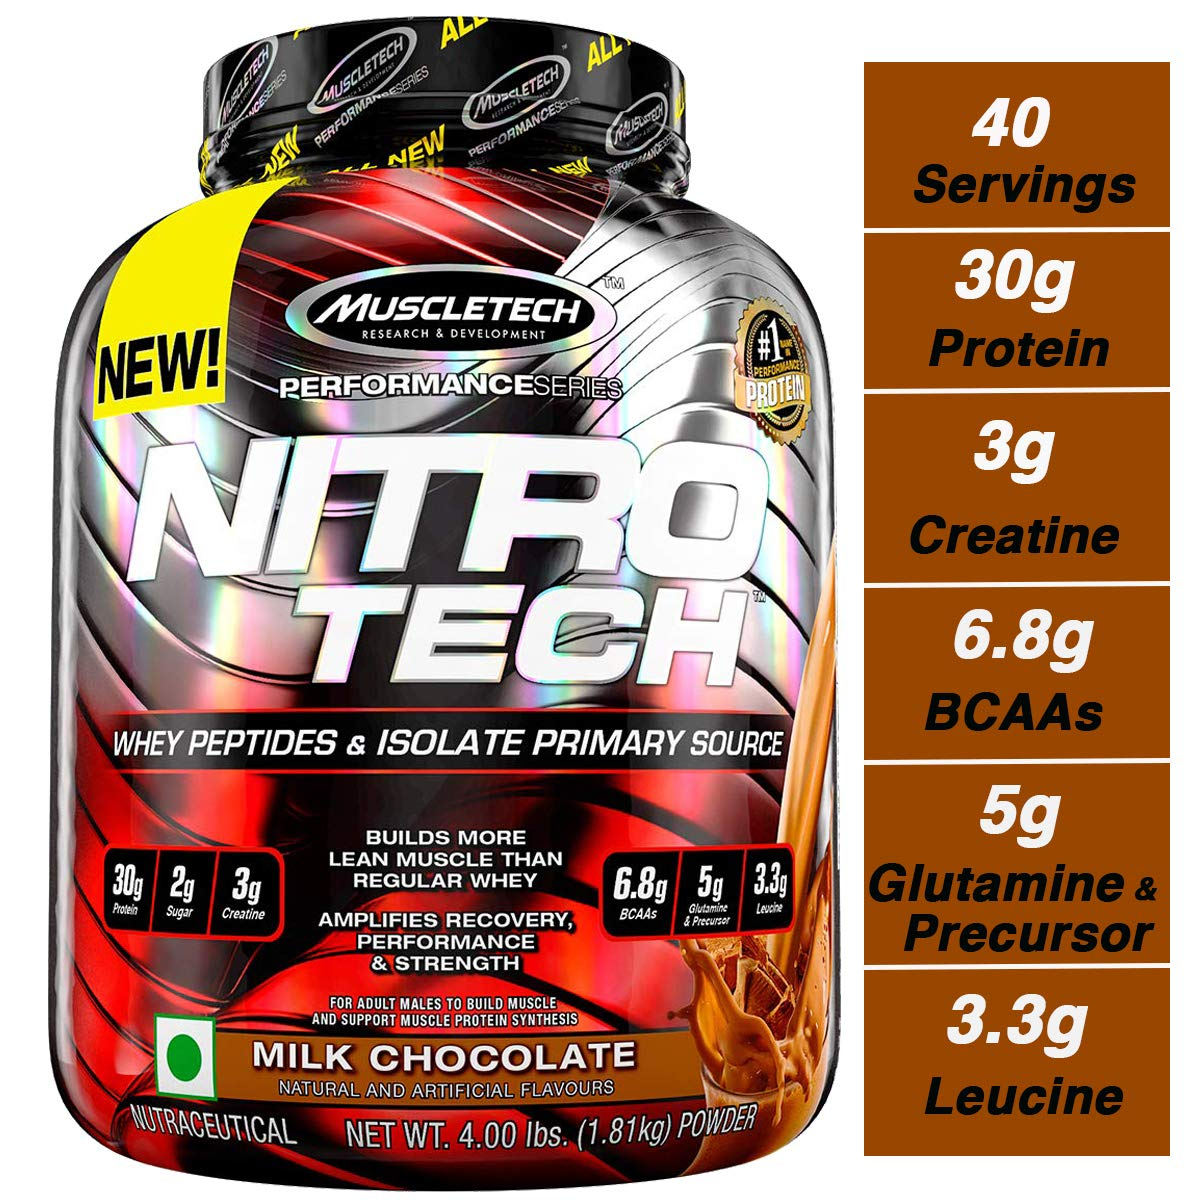 Muscletech NitroTech Protein Powder Plus Creatine Monohydrate Muscle Builder, 100% Whey Protein with Whey Isolate, Milk Chocolate, 40 Servings (4lbs) by MuscleTech